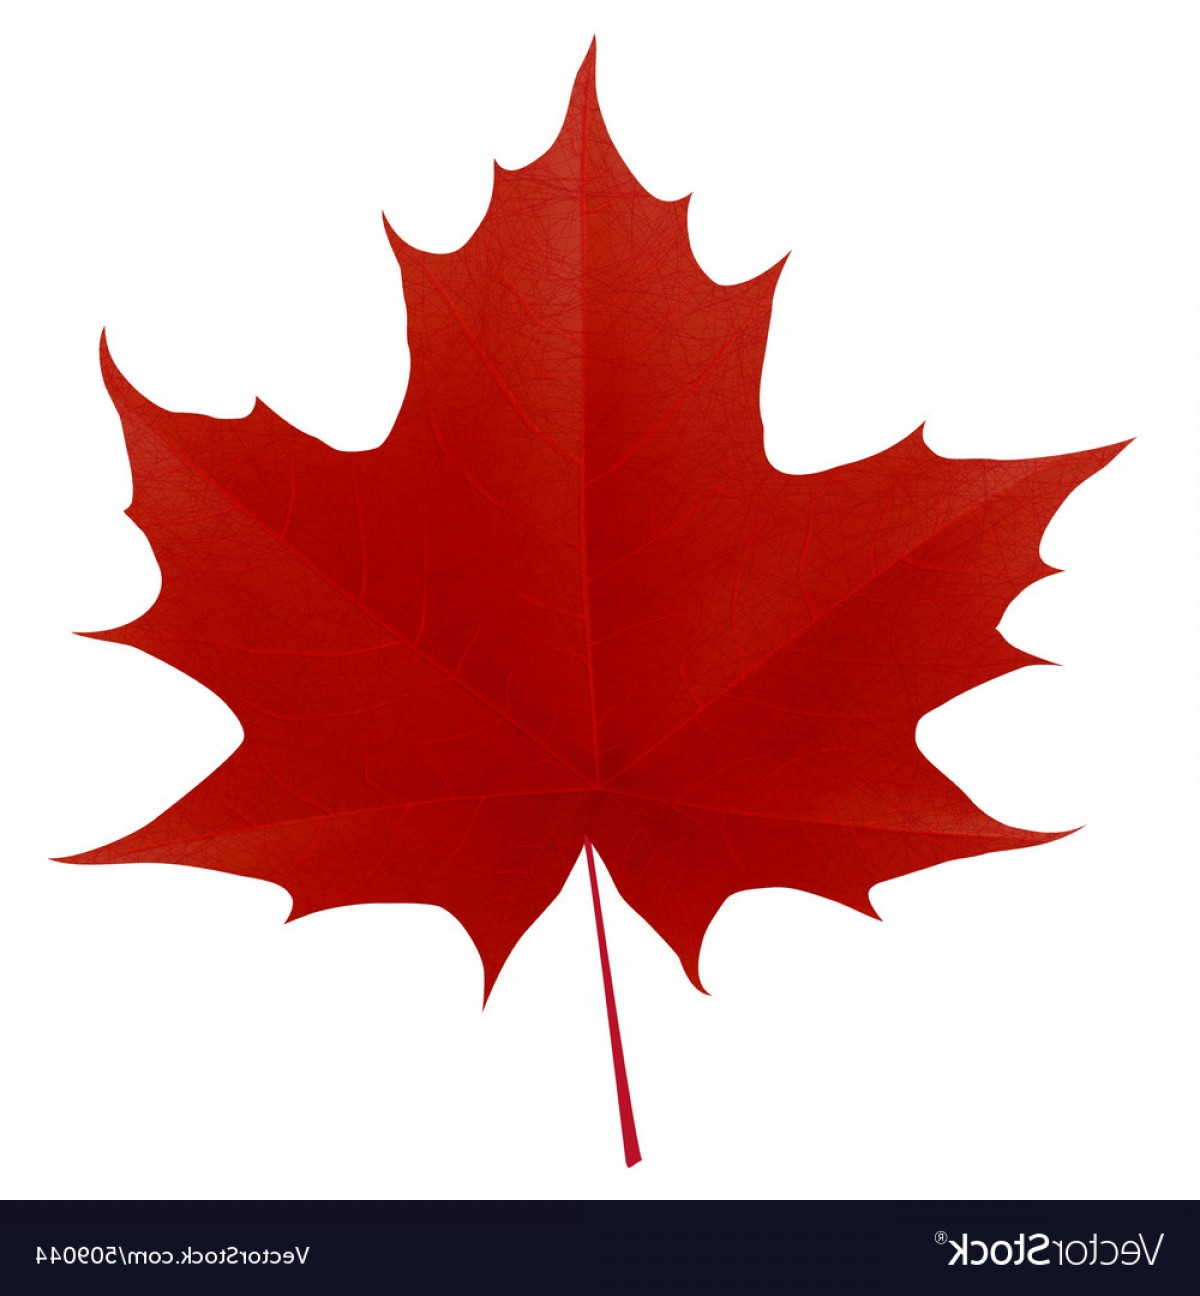 Red Maple Leaf Vector: Realistic Red Maple Leaf Vector